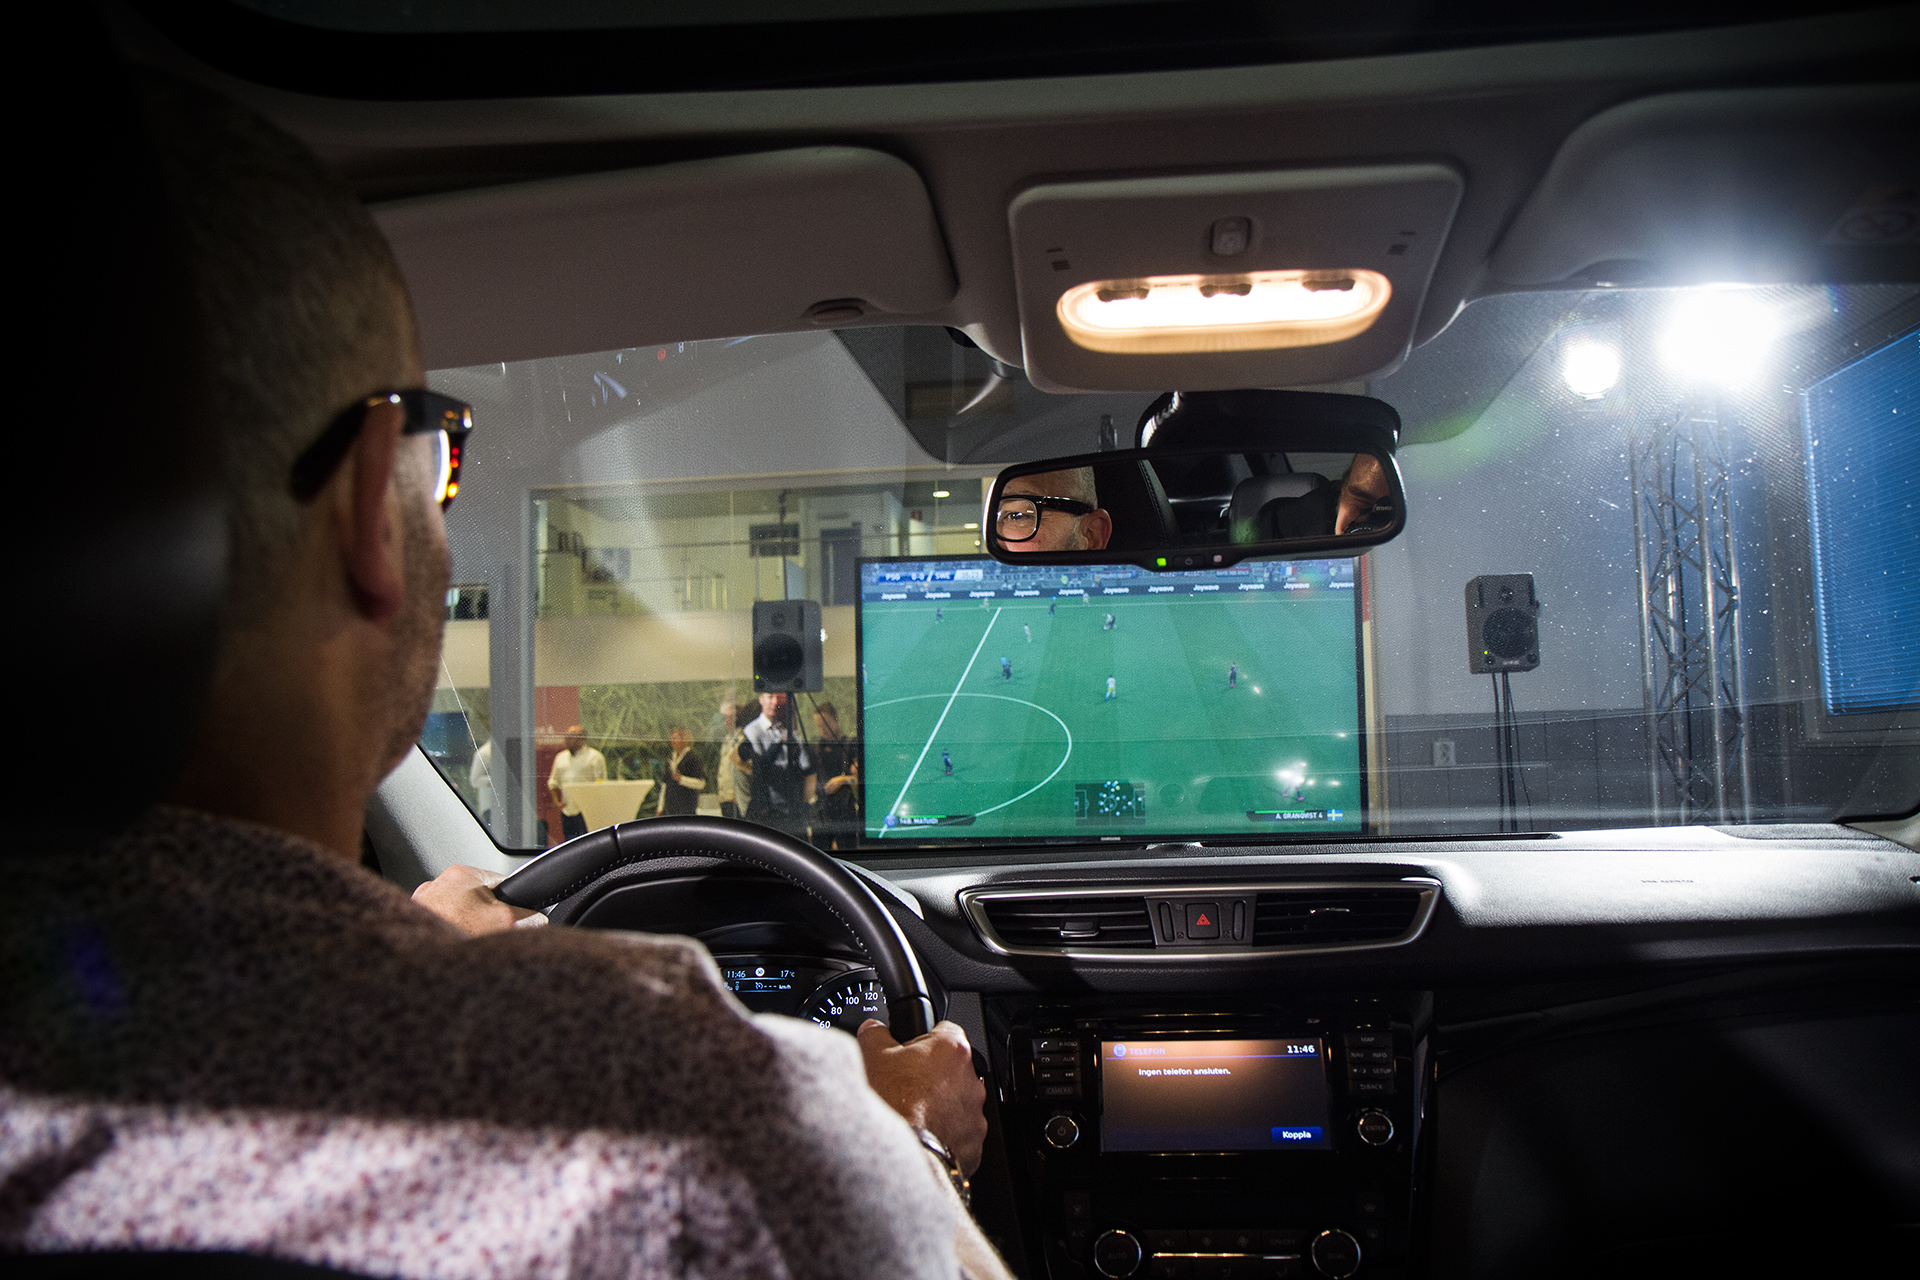 Nissan has turned a SUV into a PlayStation 4 game controller.